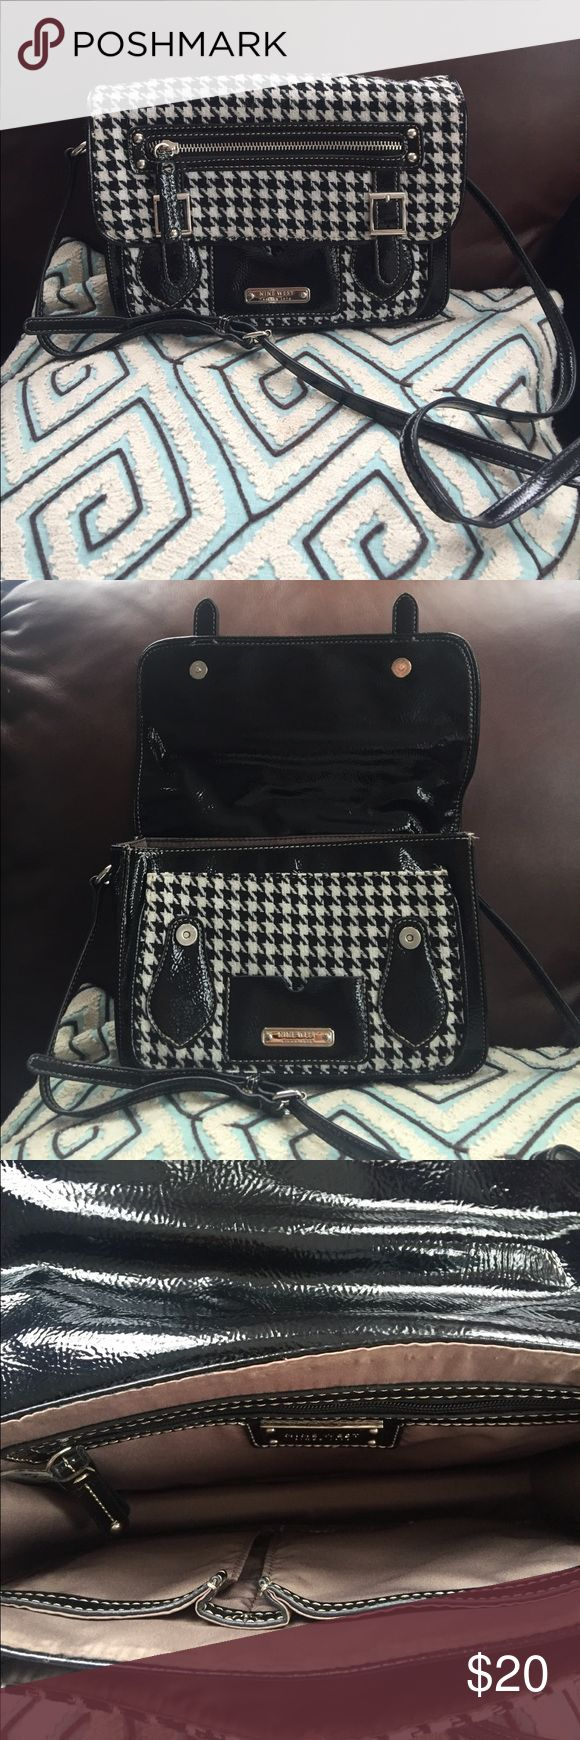 Nine West Purse Beautiful and functional Bag! It is in excellent used condition with only one small tear on the handle.(please check the last picture). Nine West Bags Crossbody Bags